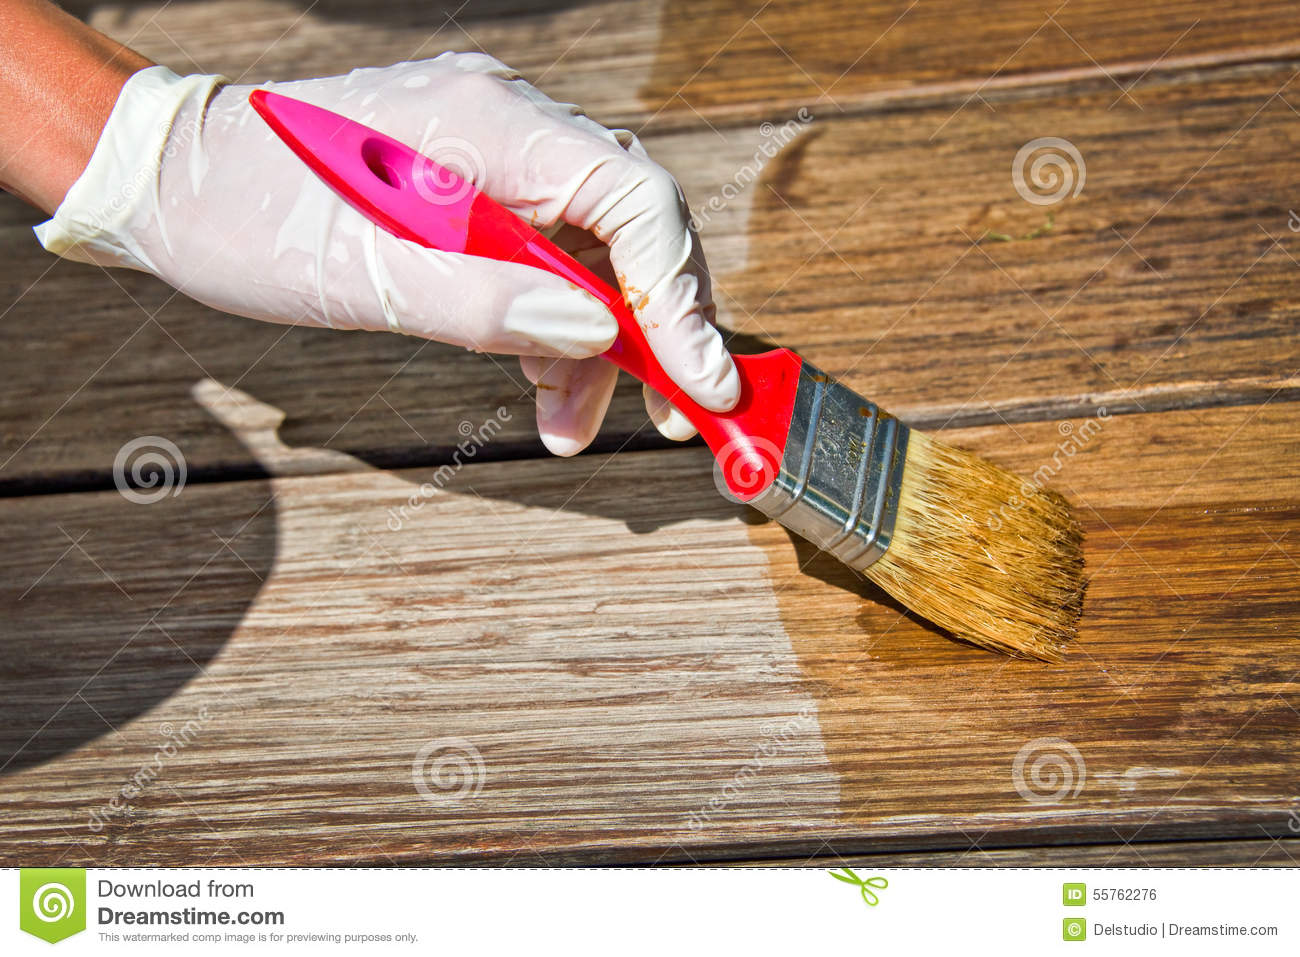 applying varnish onto a wooden surface with a brush stock image 90647791. Black Bedroom Furniture Sets. Home Design Ideas